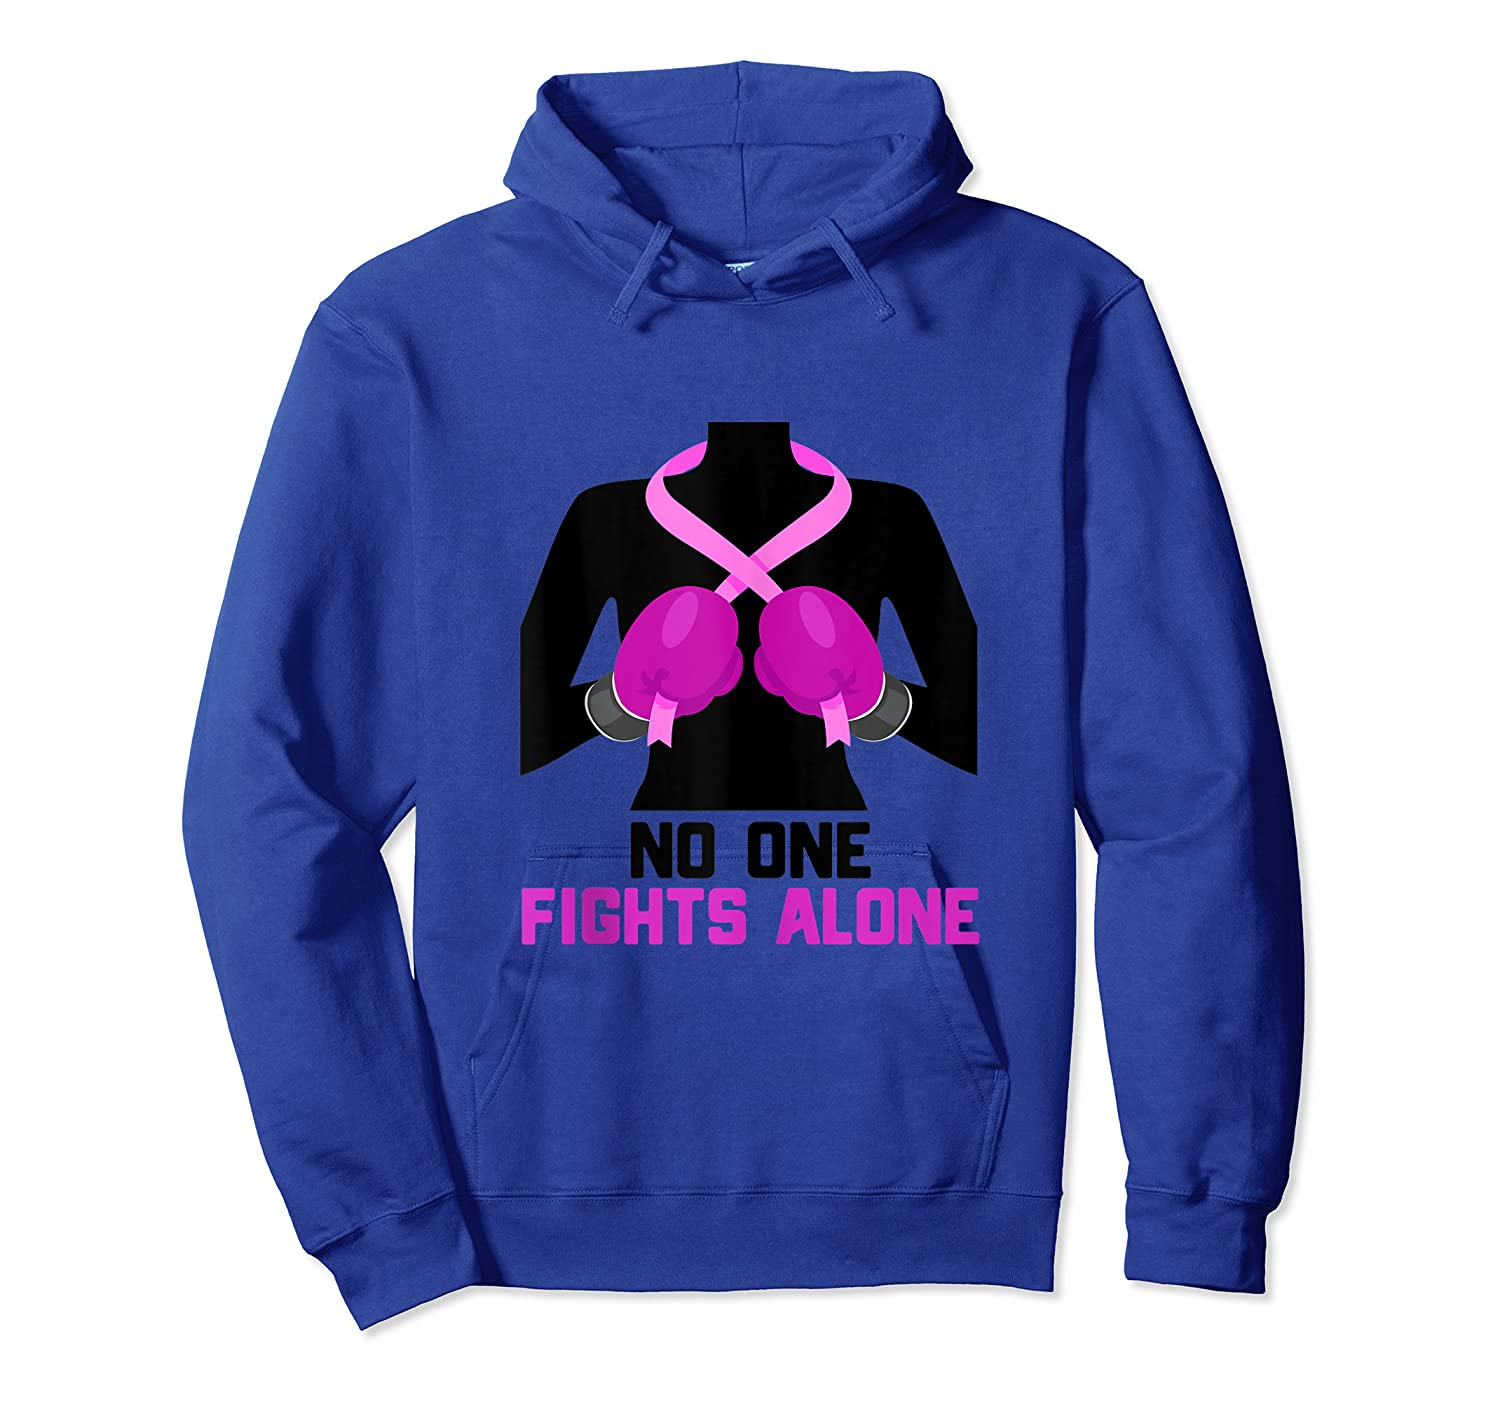 Husband Of A Warrior Breast Cancer Awareness Month Gift Tank Top Shirts Unisex Pullover Hoodie